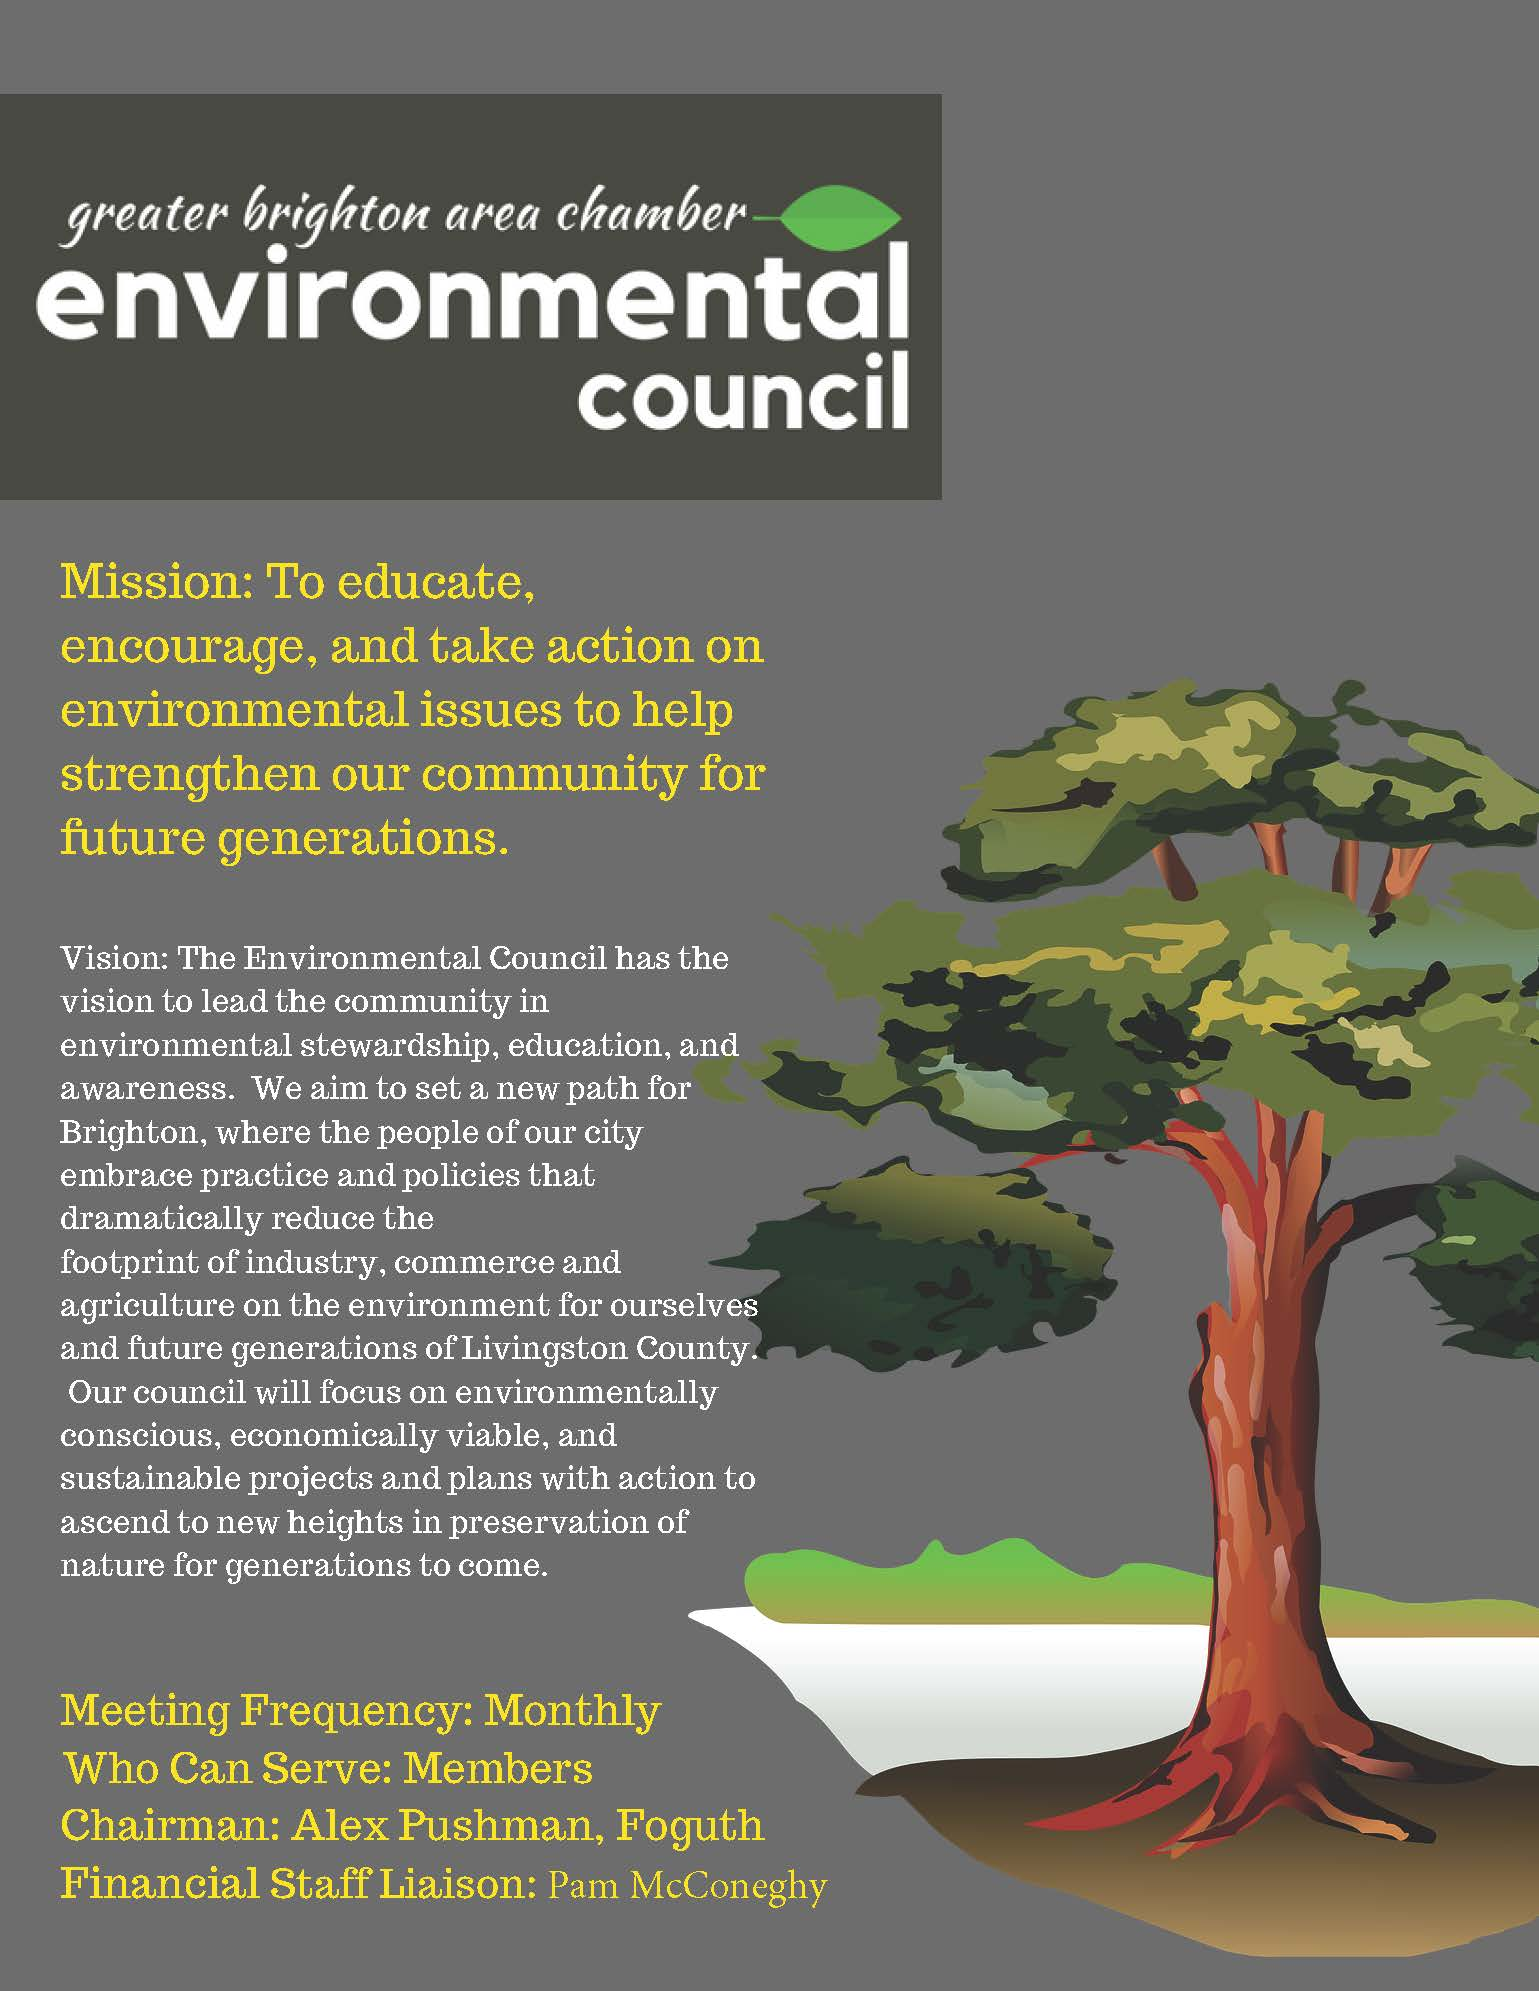 Brighton_Chamber_Environmental_Council_Mission_Vision_Graphic.png